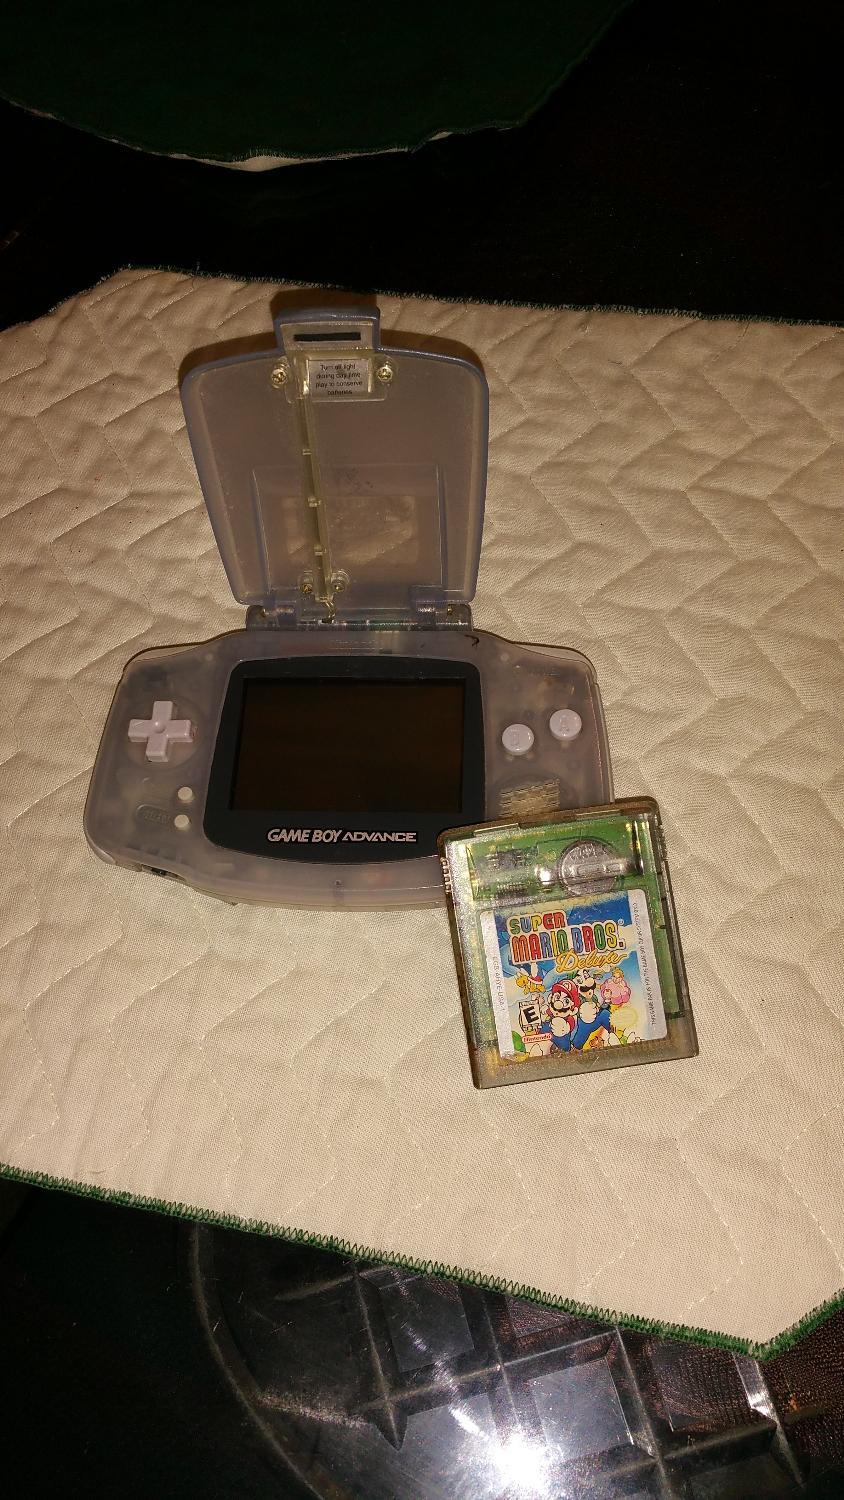 Game boy color super mario bros deluxe - Best Gameboy Advance With Super Mario Bros Deluxe Game Works It Just Needs A Battery Cover For Sale In Brazoria County Texas For 2017